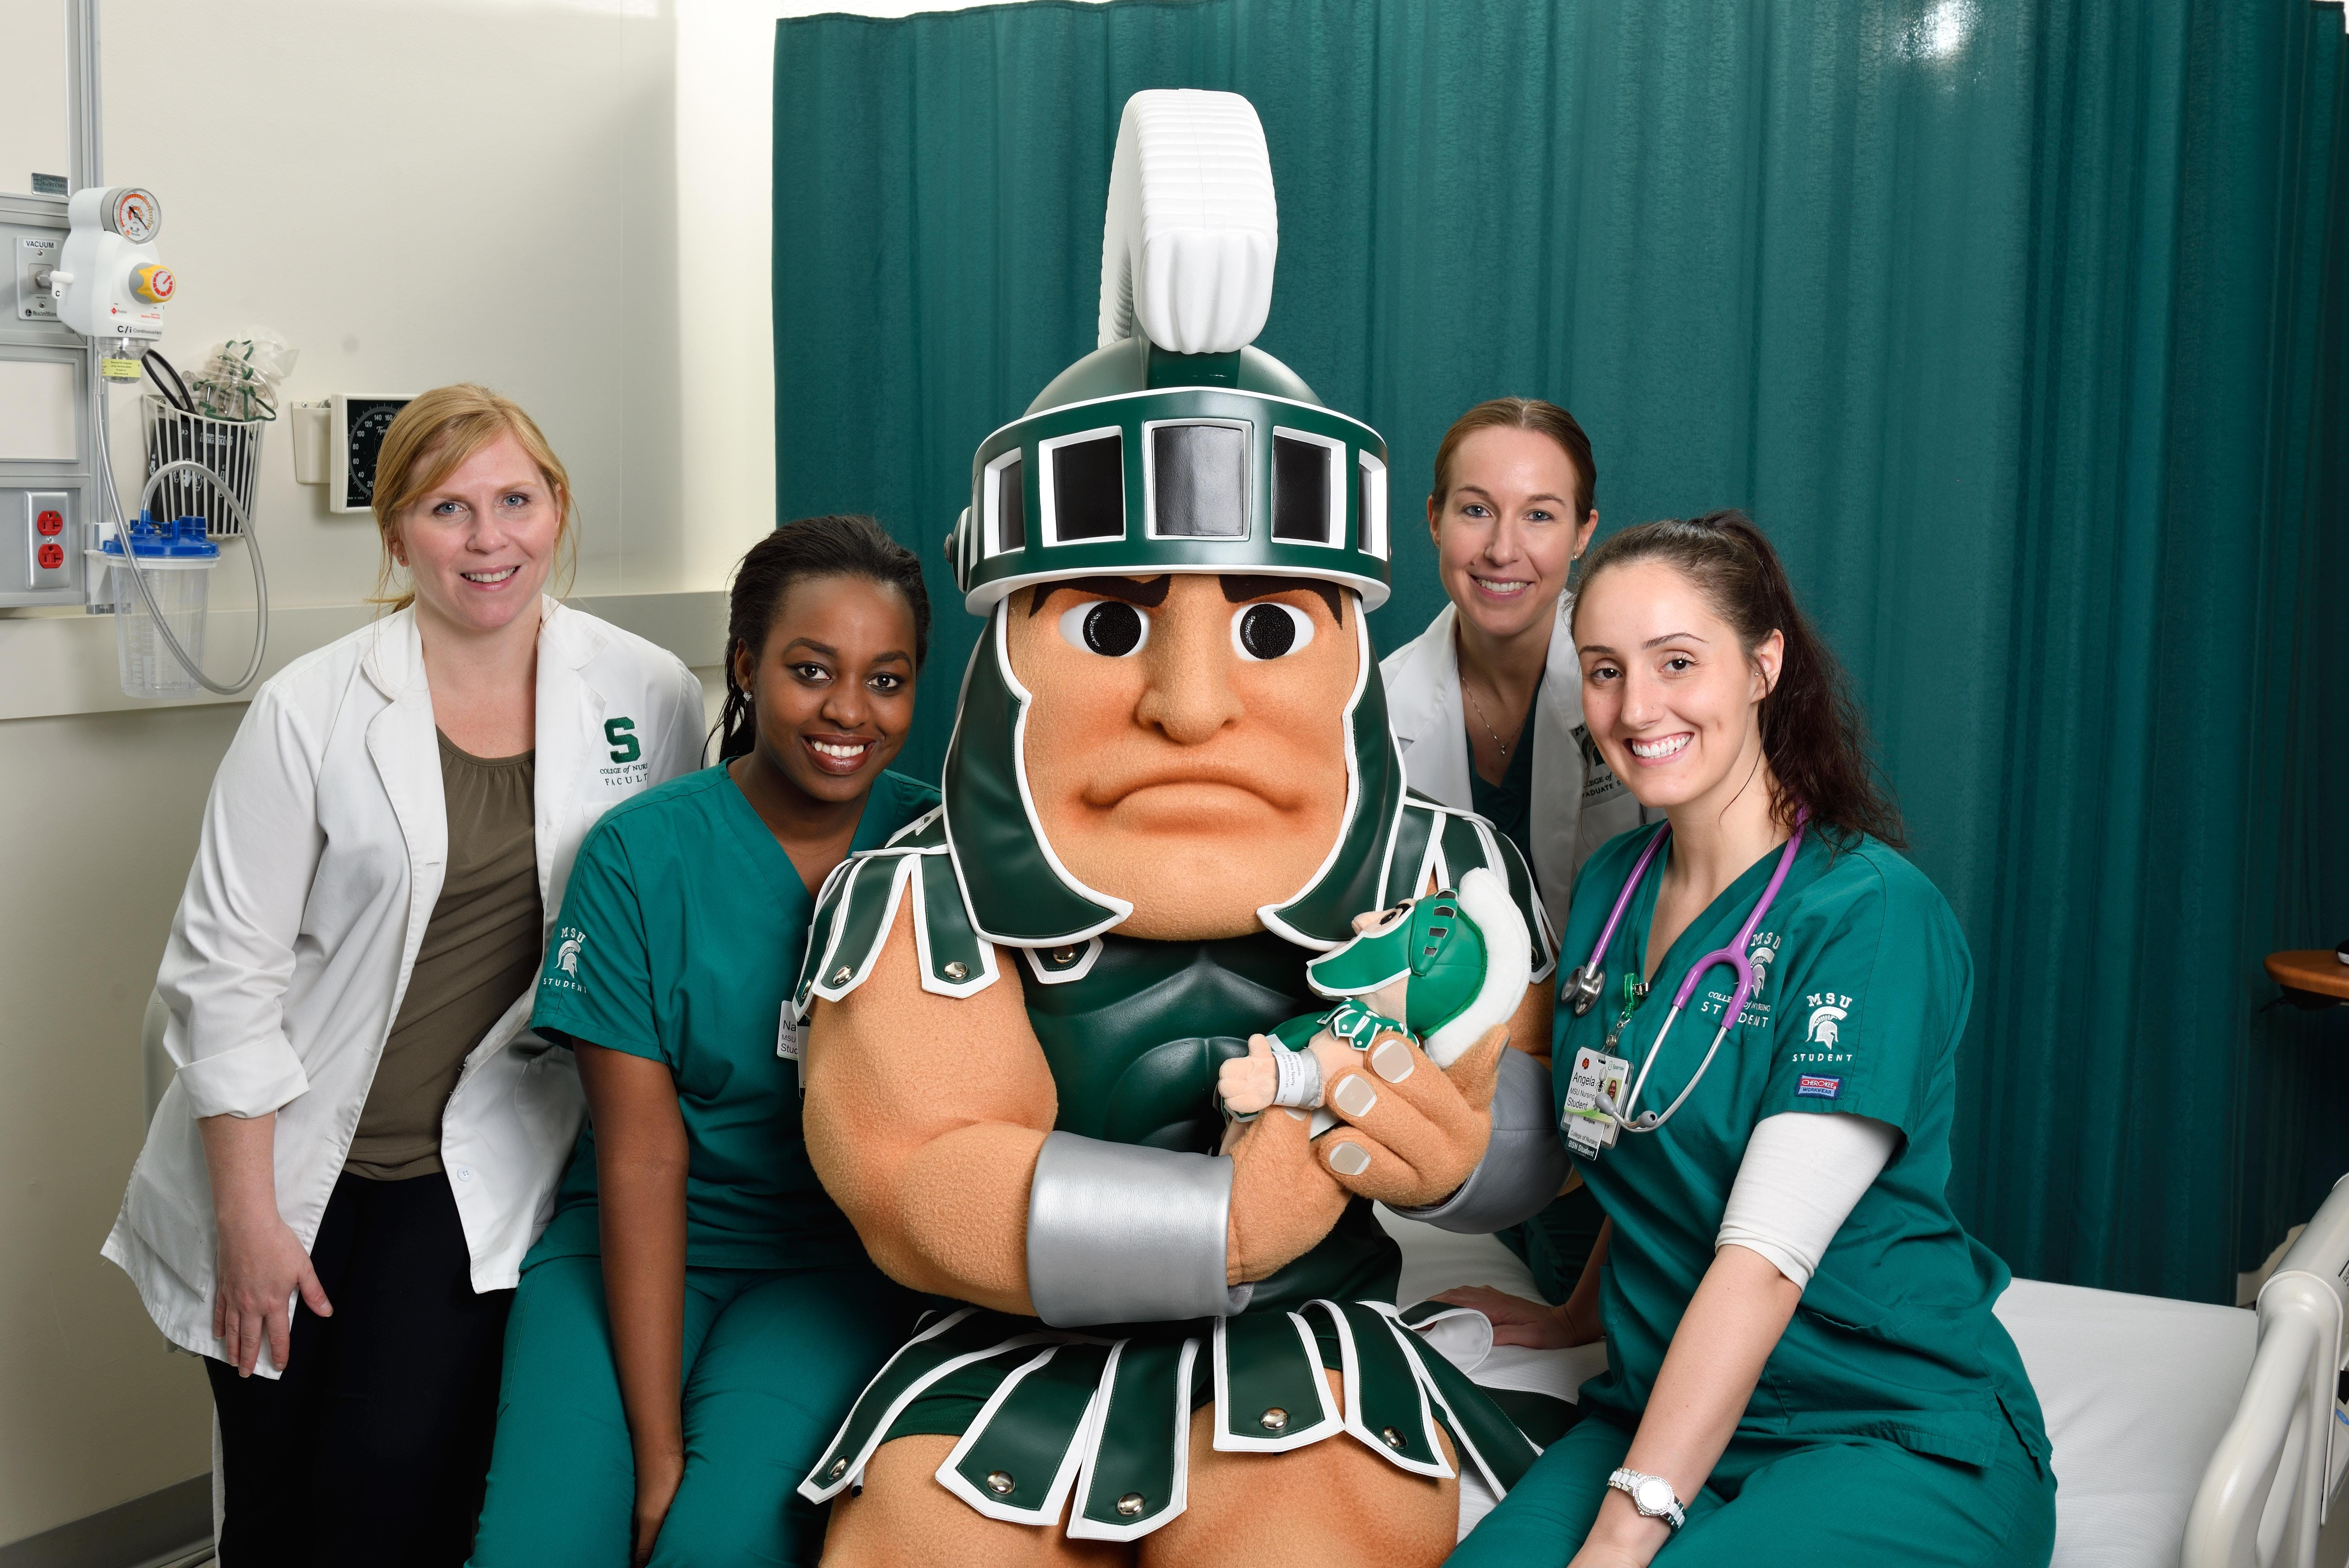 Msu Student Info >> Bott Building For Nursing Education And Research Msu